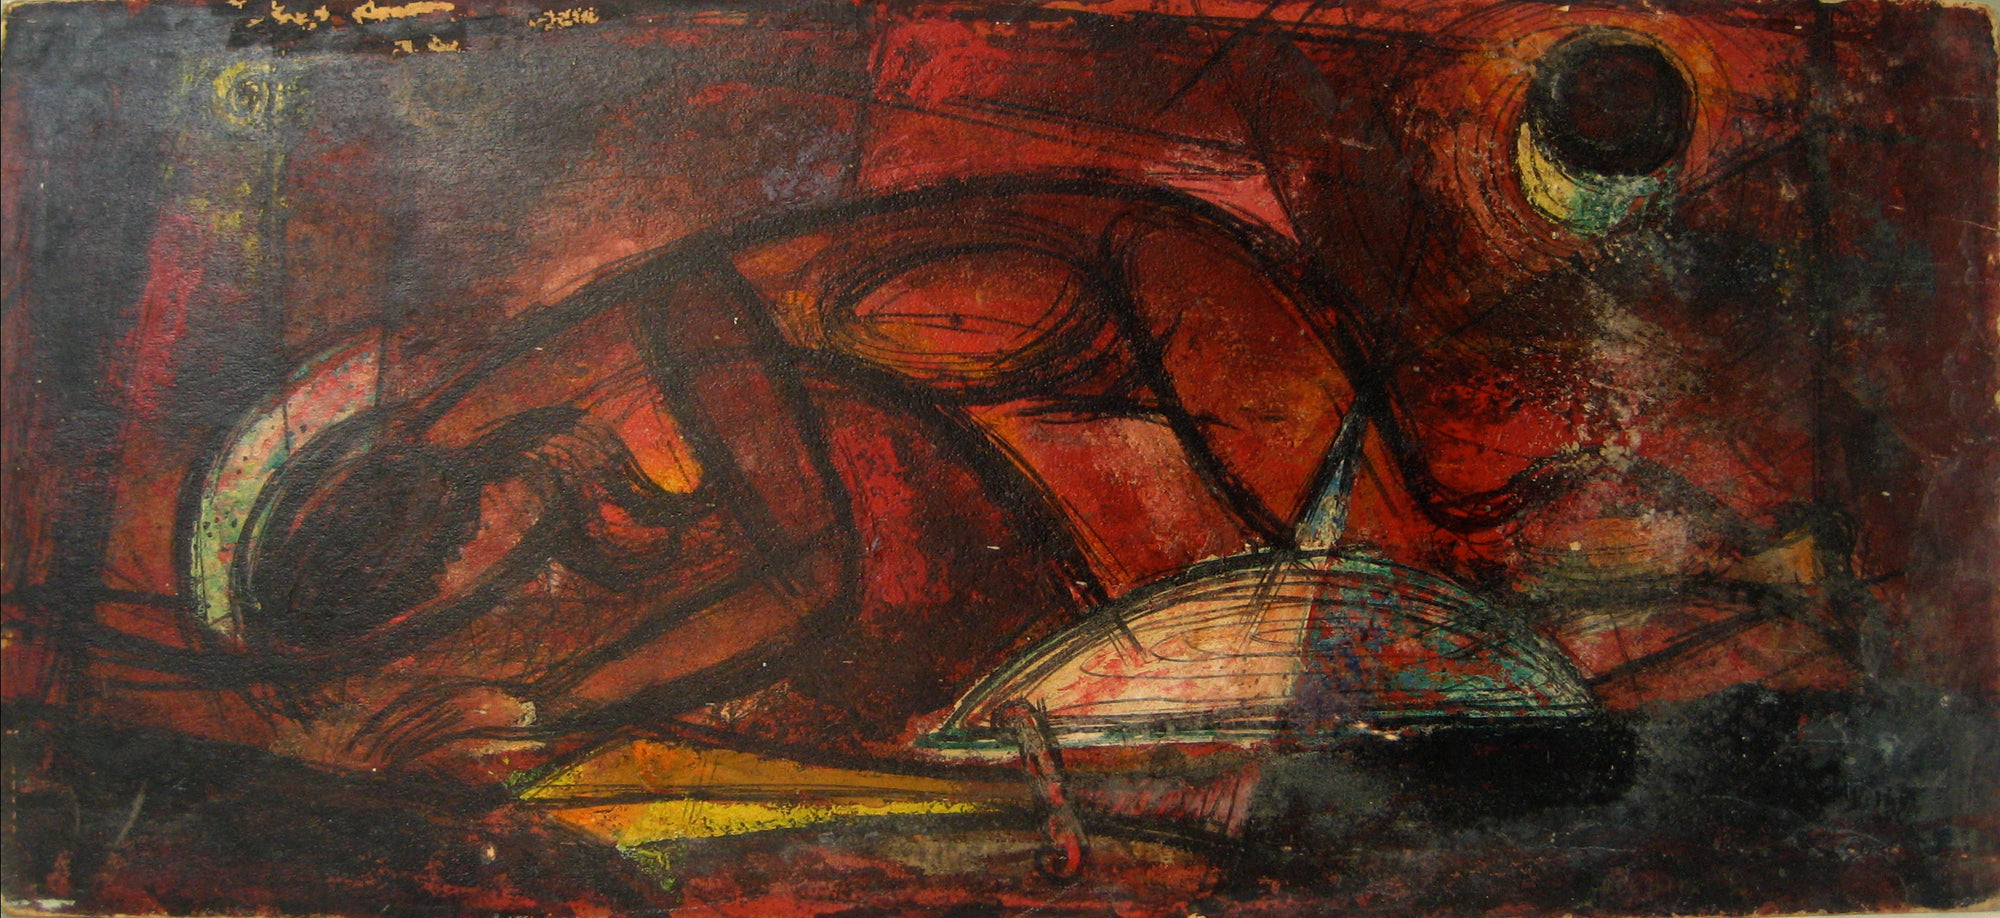 Abstracted Crouched Figure in Red<br>1950-60s Oil<br><br>#13535